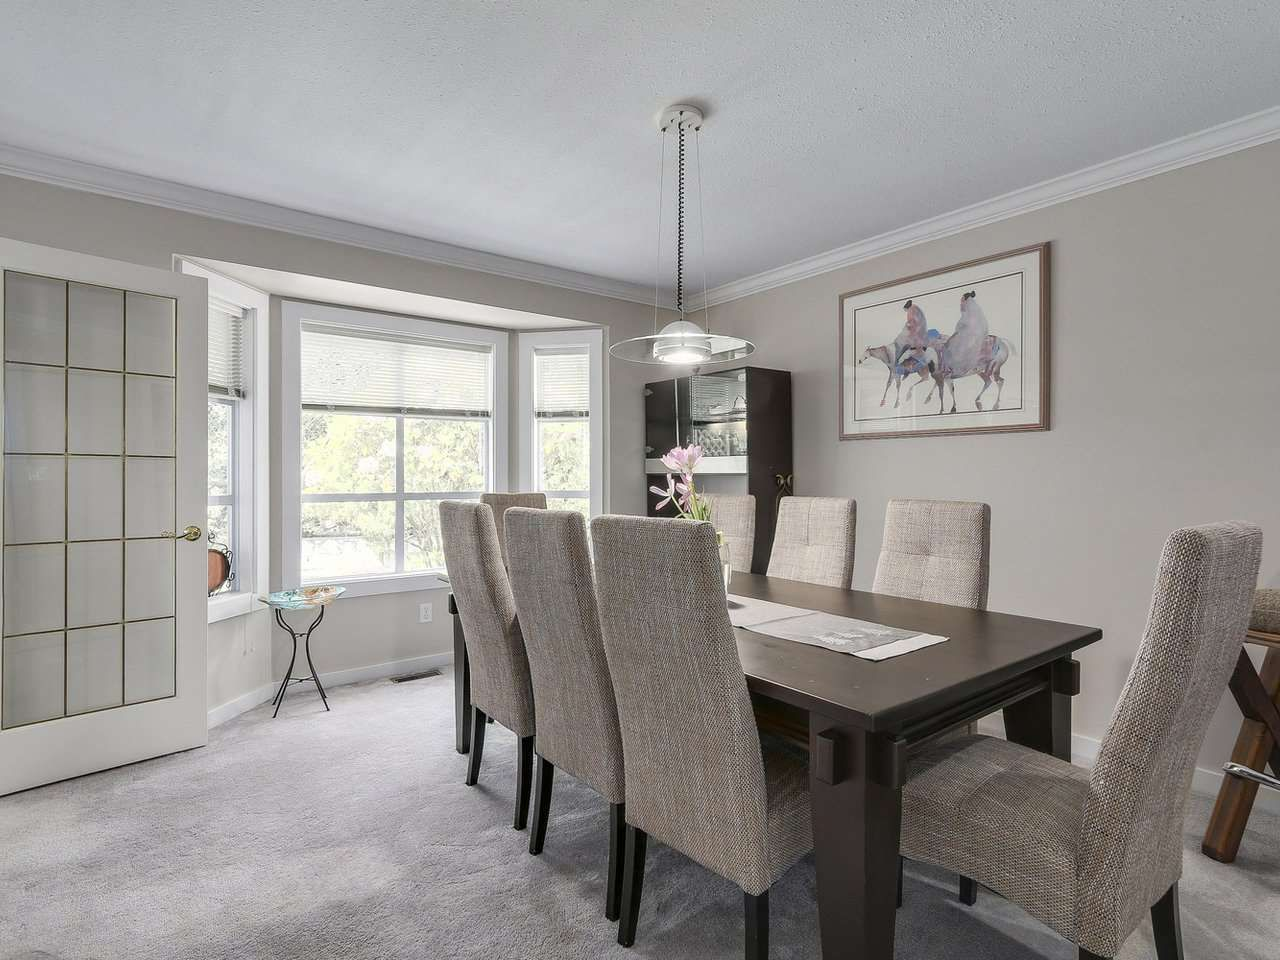 Photo 13: Photos: 737 East 29th Street, North Vancouver